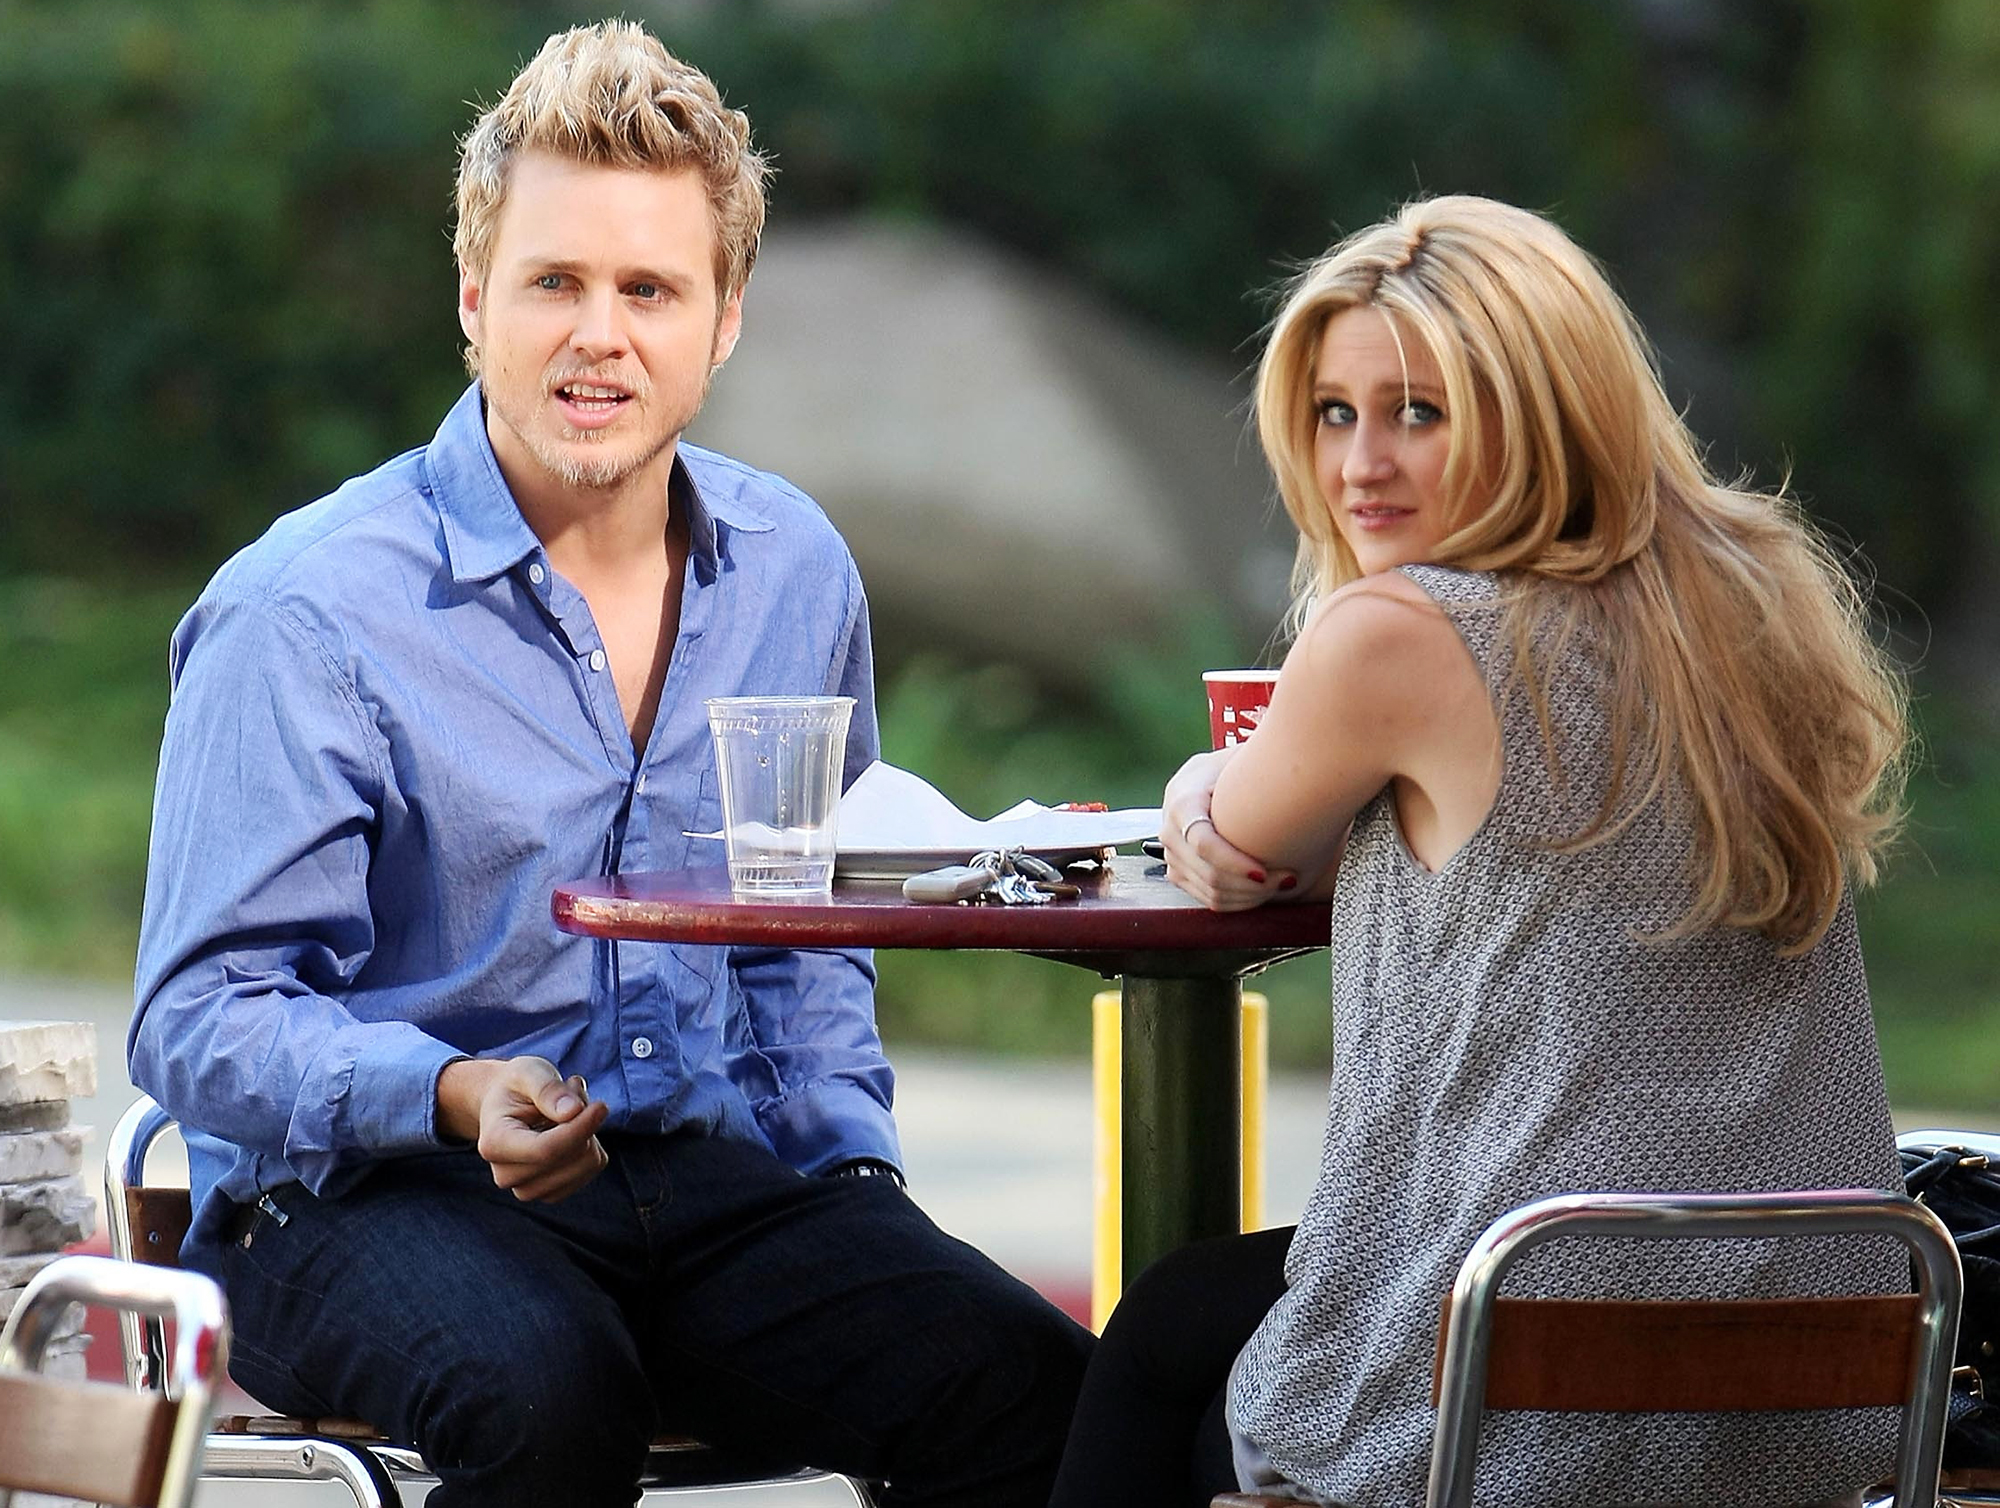 """Spencer-Pratt-Stephanie-Pratt-fight-on-The-Hills - """"Heidi is always number one to Spencer, so you know what? Spencer is dead to me ,"""" Stephanie said during the April 2019 """"Pratt Cast"""" episode. She also revealed that her brother was cut out of their parents' will due to """"how horrific he is as a human."""""""